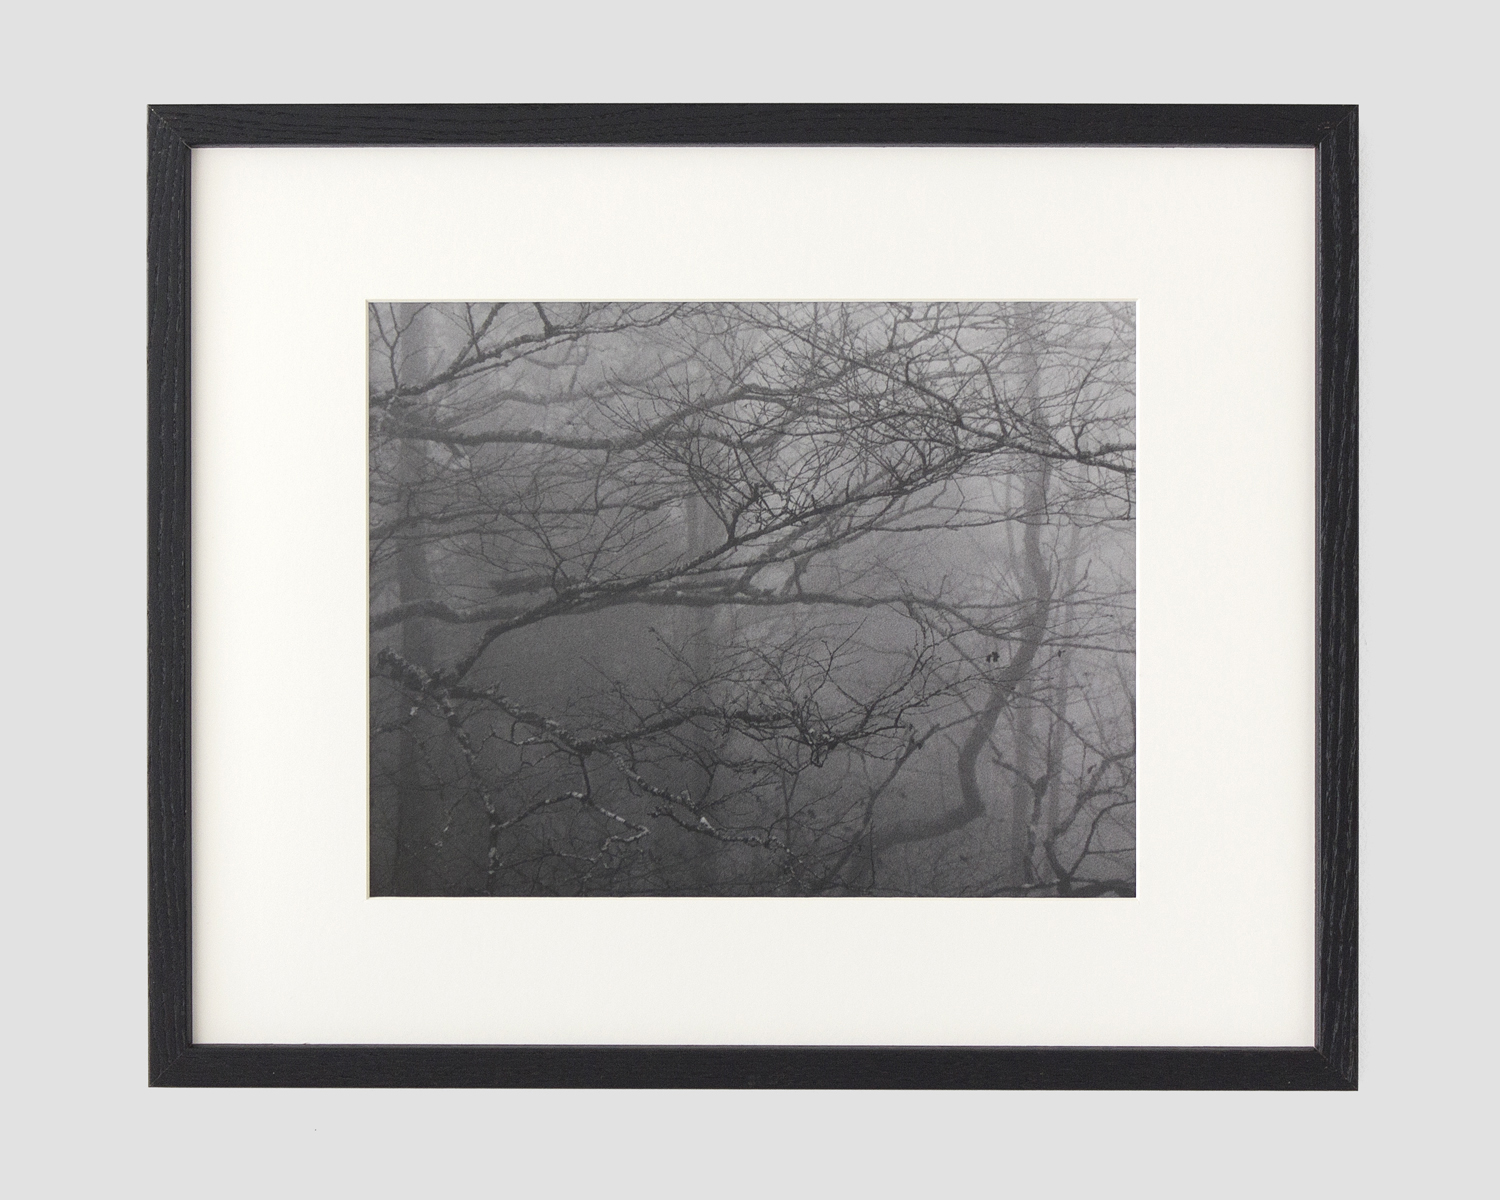 gelatin silver print  image size 11 x 14 in.  frame size 16 x 20 in.